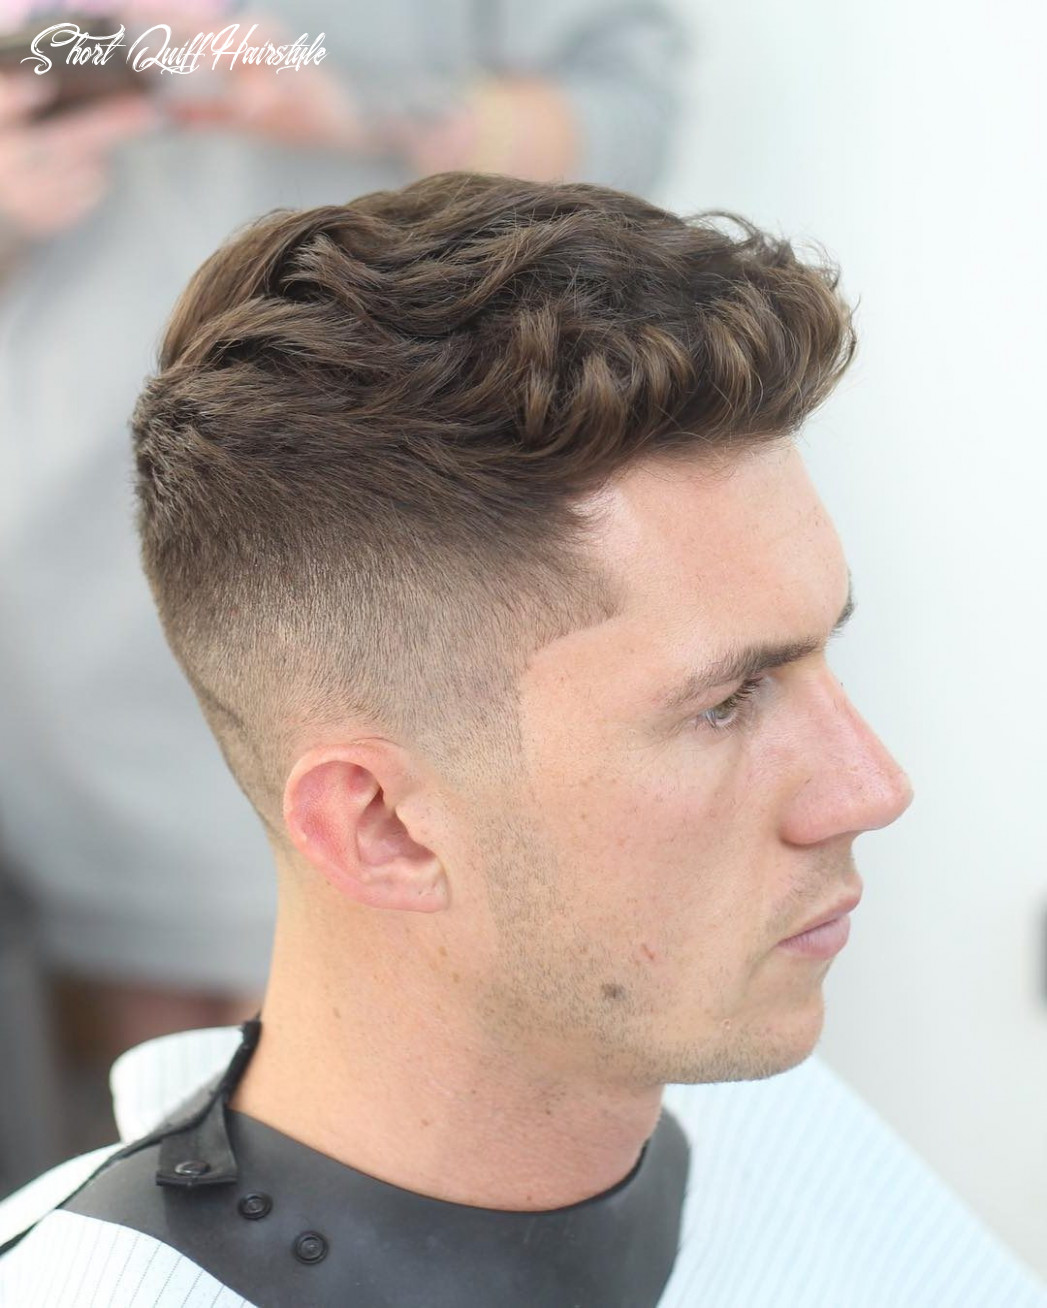 Mens short quiff hairstyles fresh the 11 best short hairstyles for